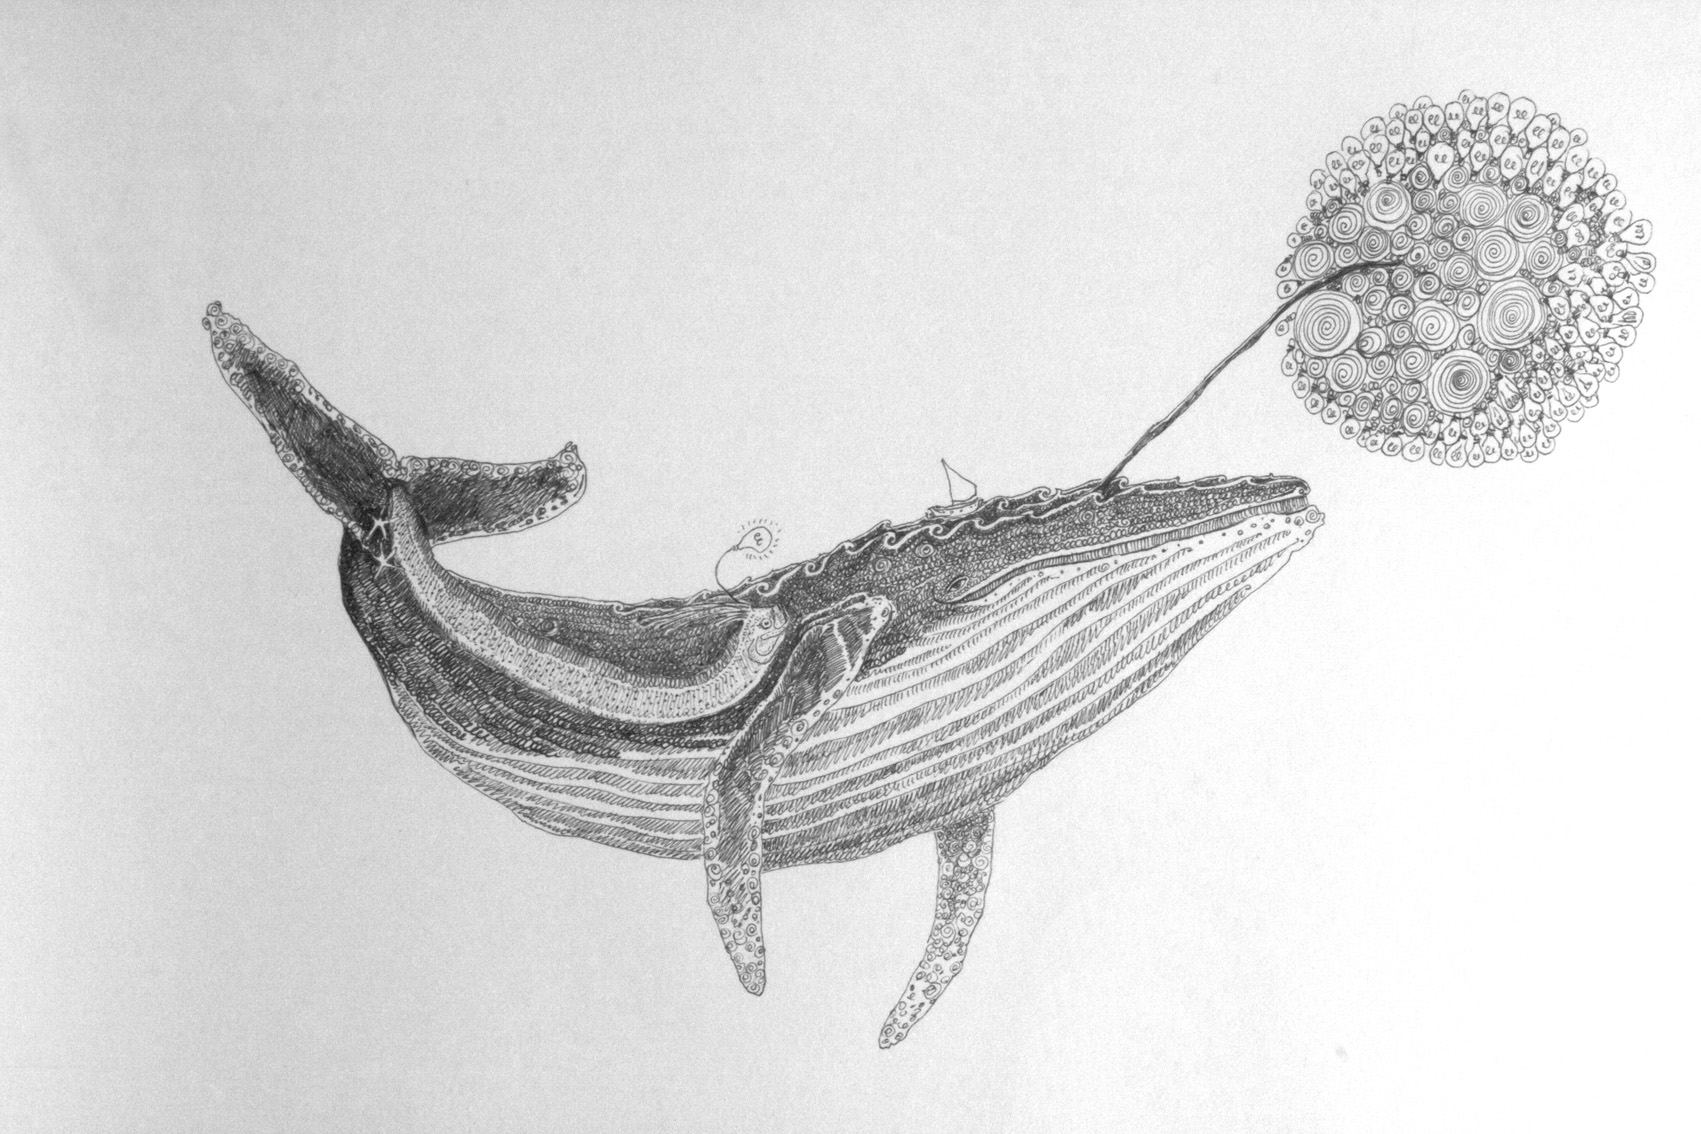 whale drawing first whale in months by killerorcawhale on deviantart whale drawing